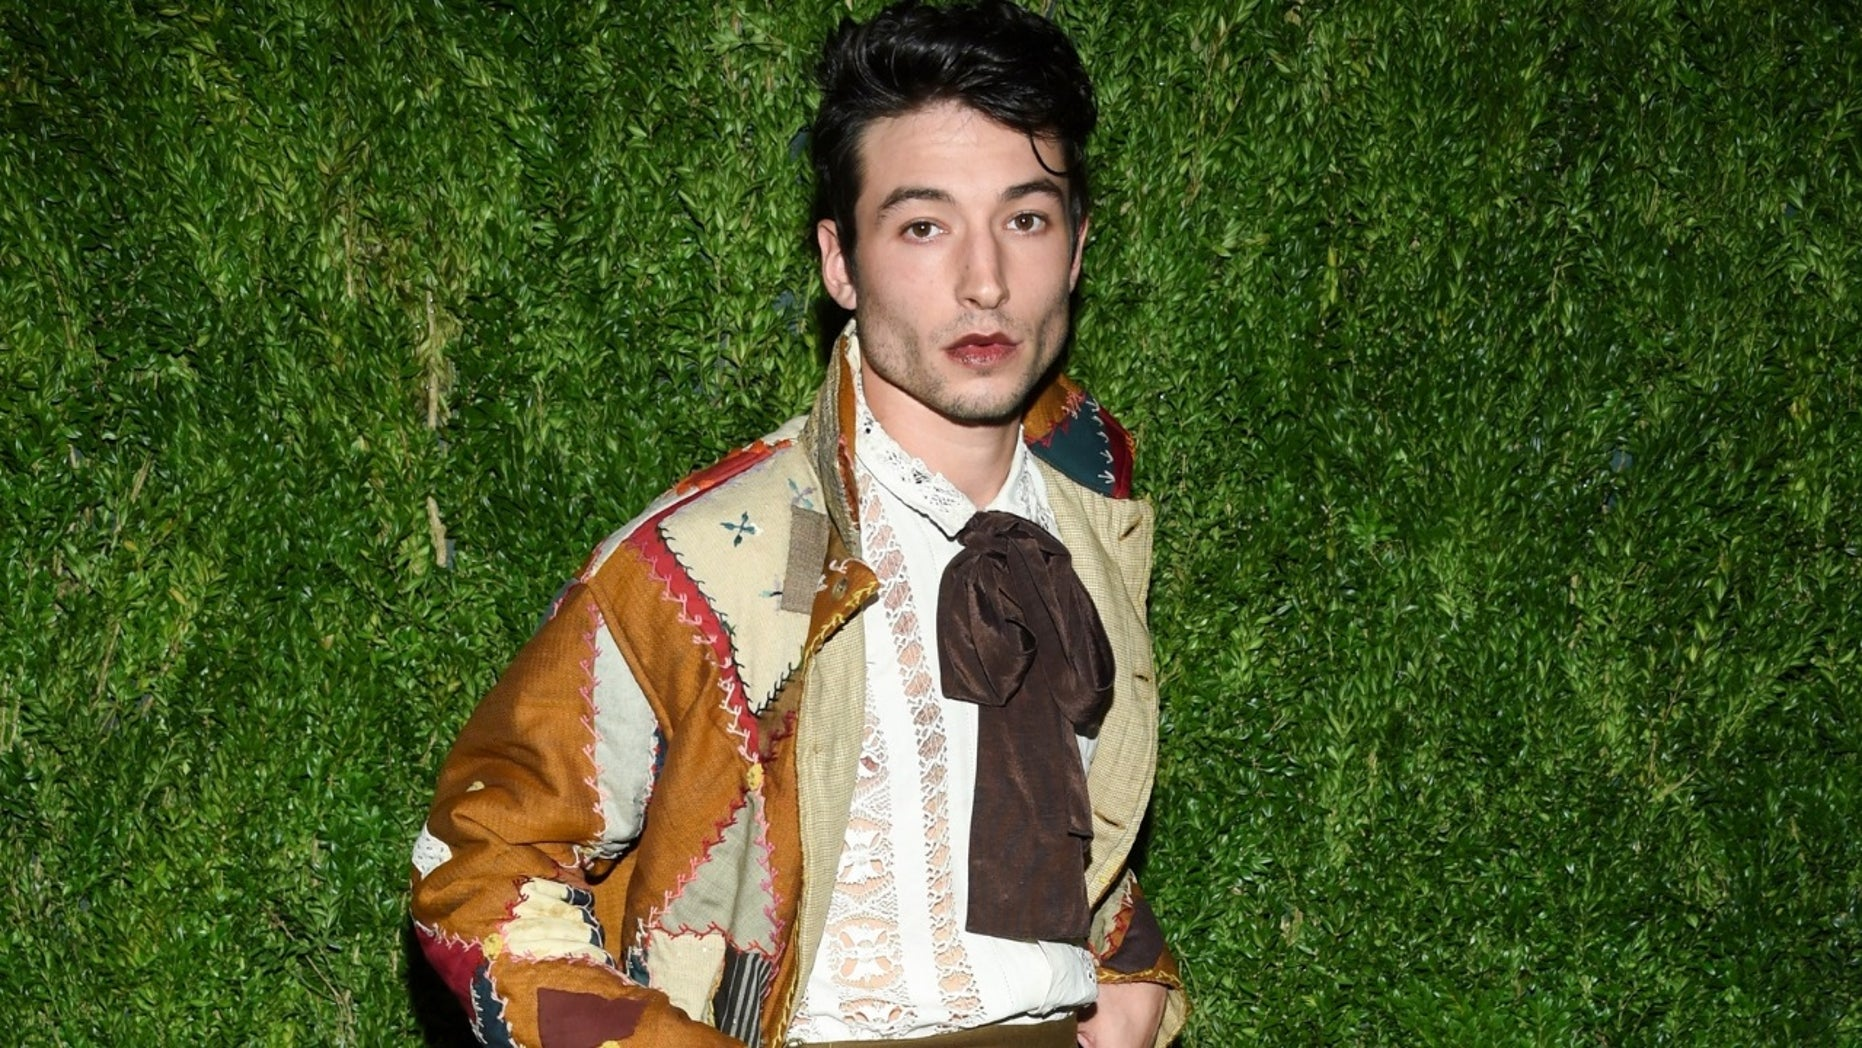 Ezra Miller opened up about his #MeToo moment.